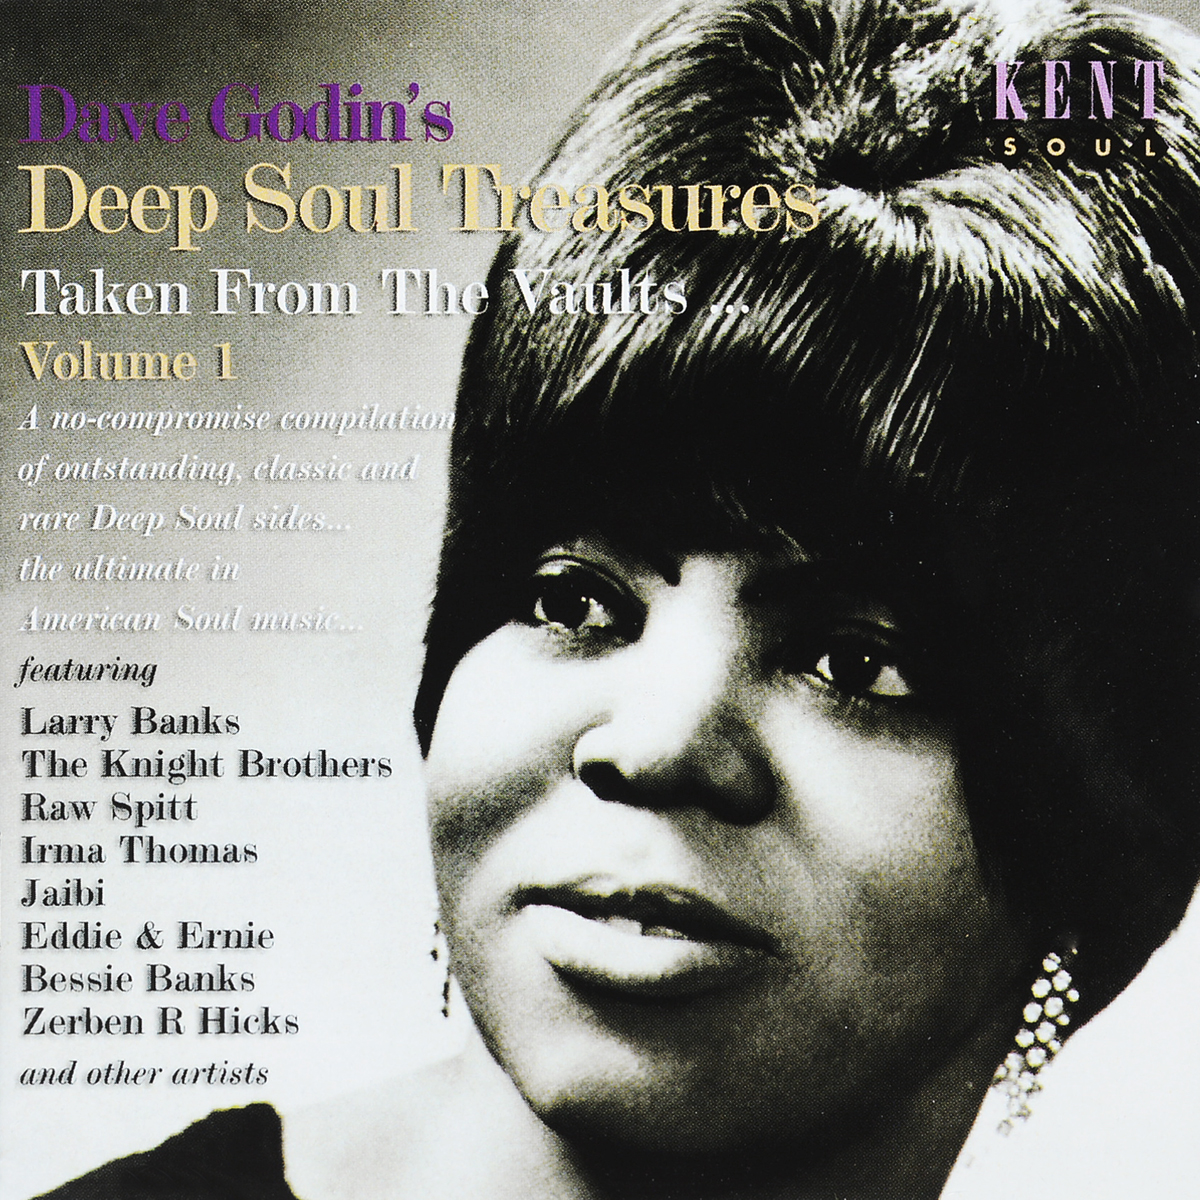 Dave Godin's Deep Soul Treasures (Taken From The Vaults...) Volume 1